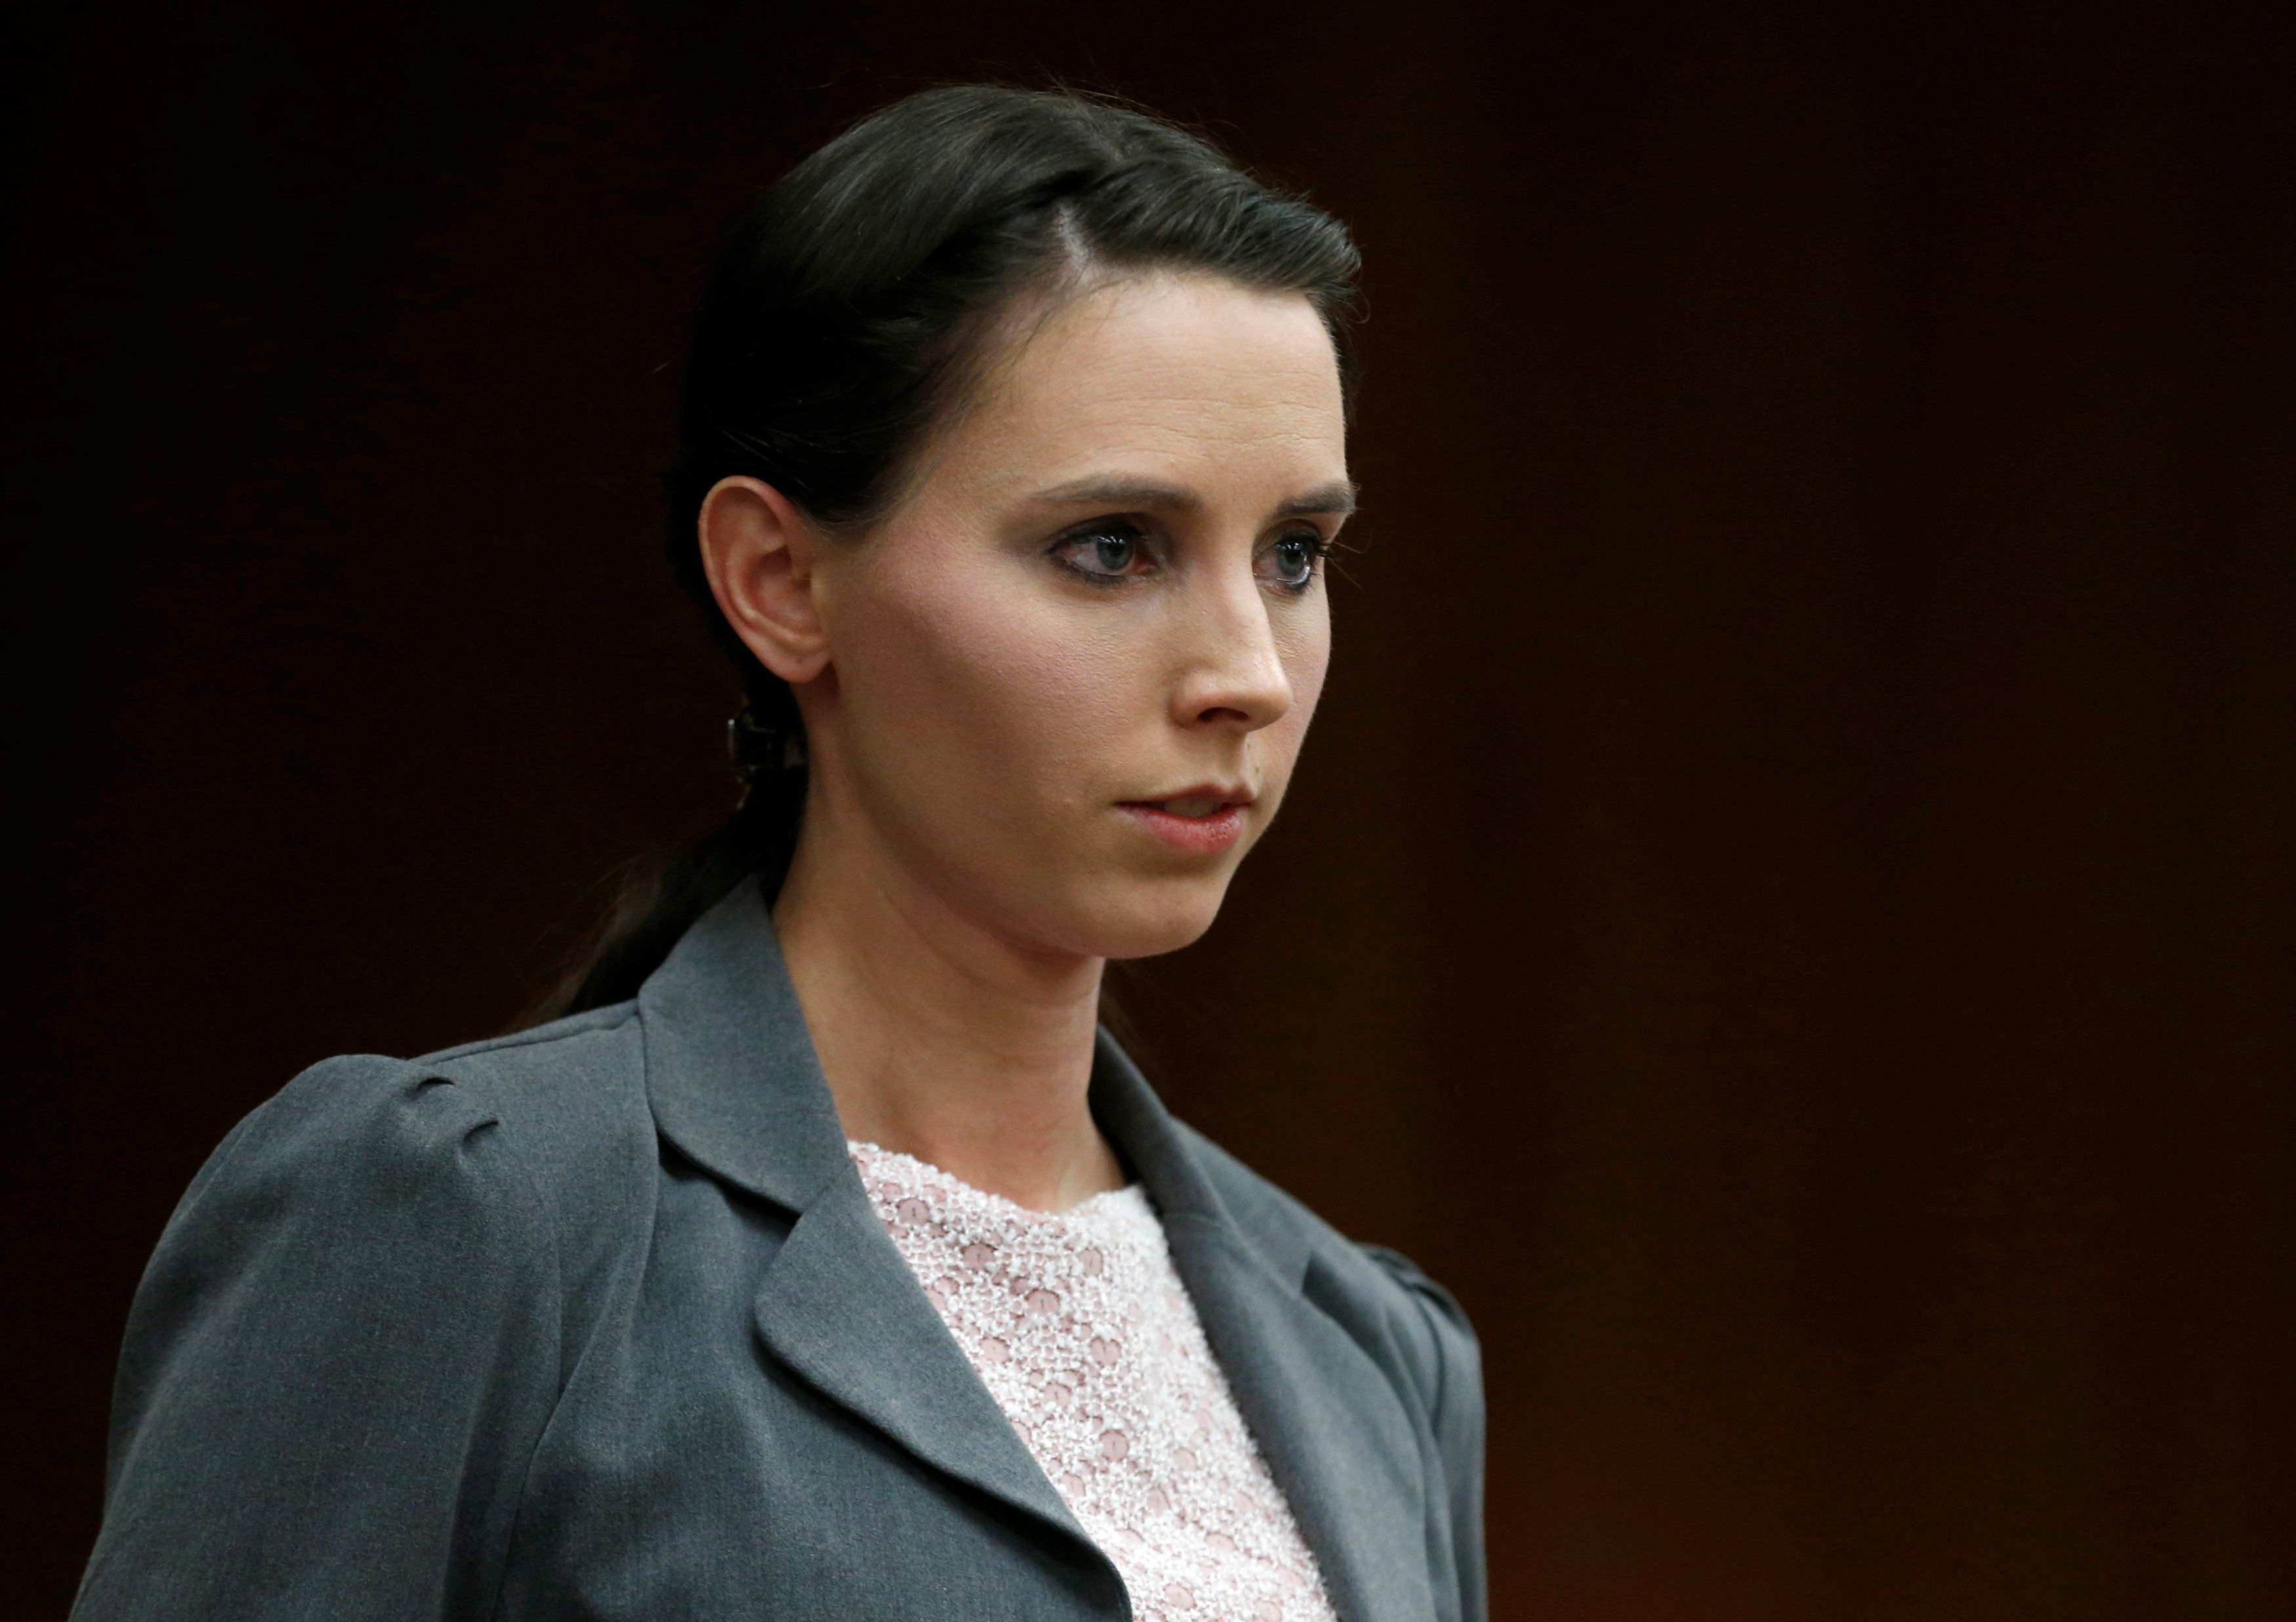 Rachael Denhollander makes a statement during convicted sexual abuser Larry Nassar's sentencing hearing in Charlotte, Mi